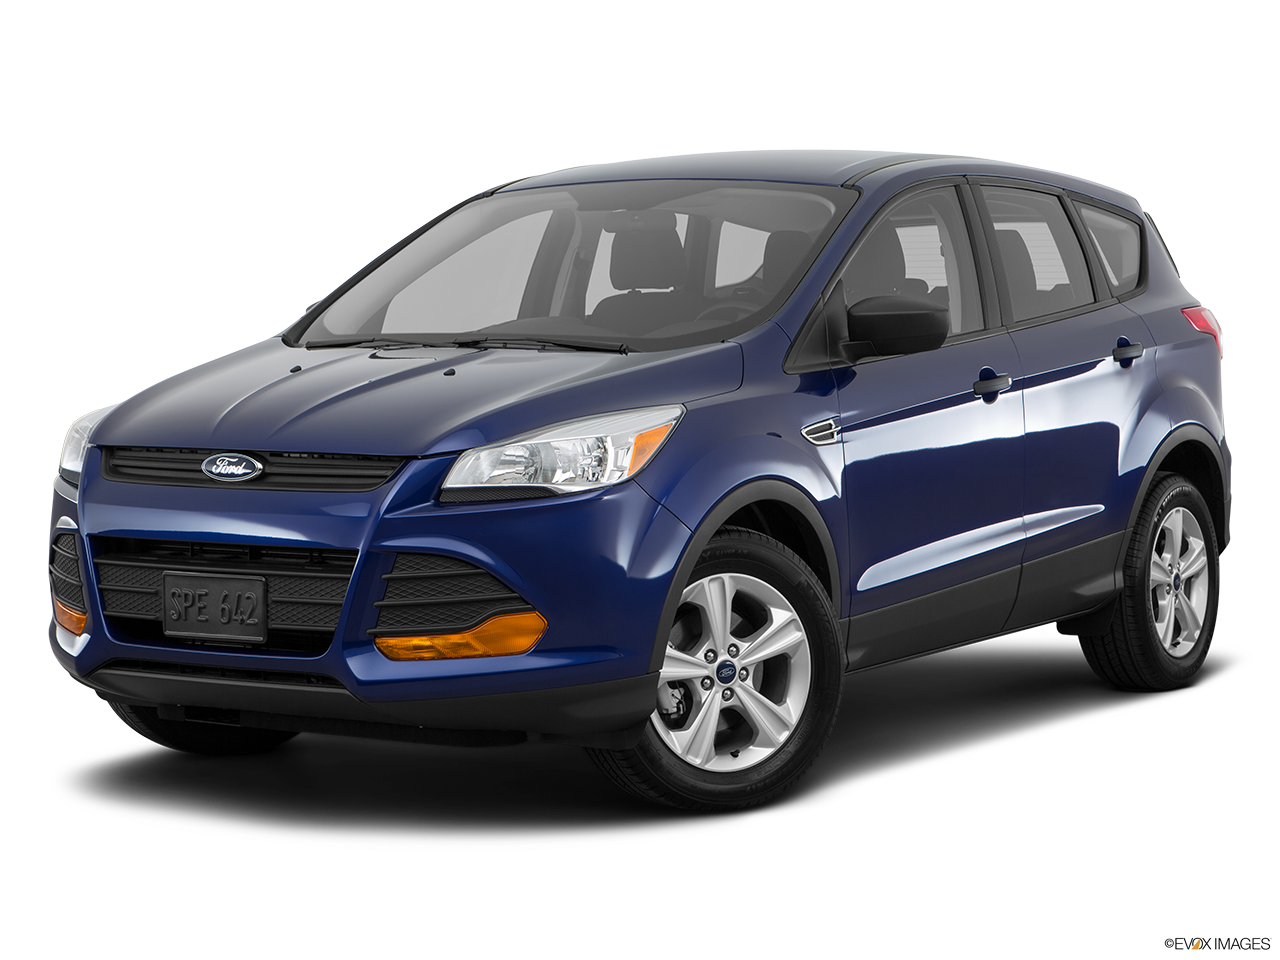 Test Drive A 2016 Ford Escape at Huntington Beach Ford in Huntington Beach